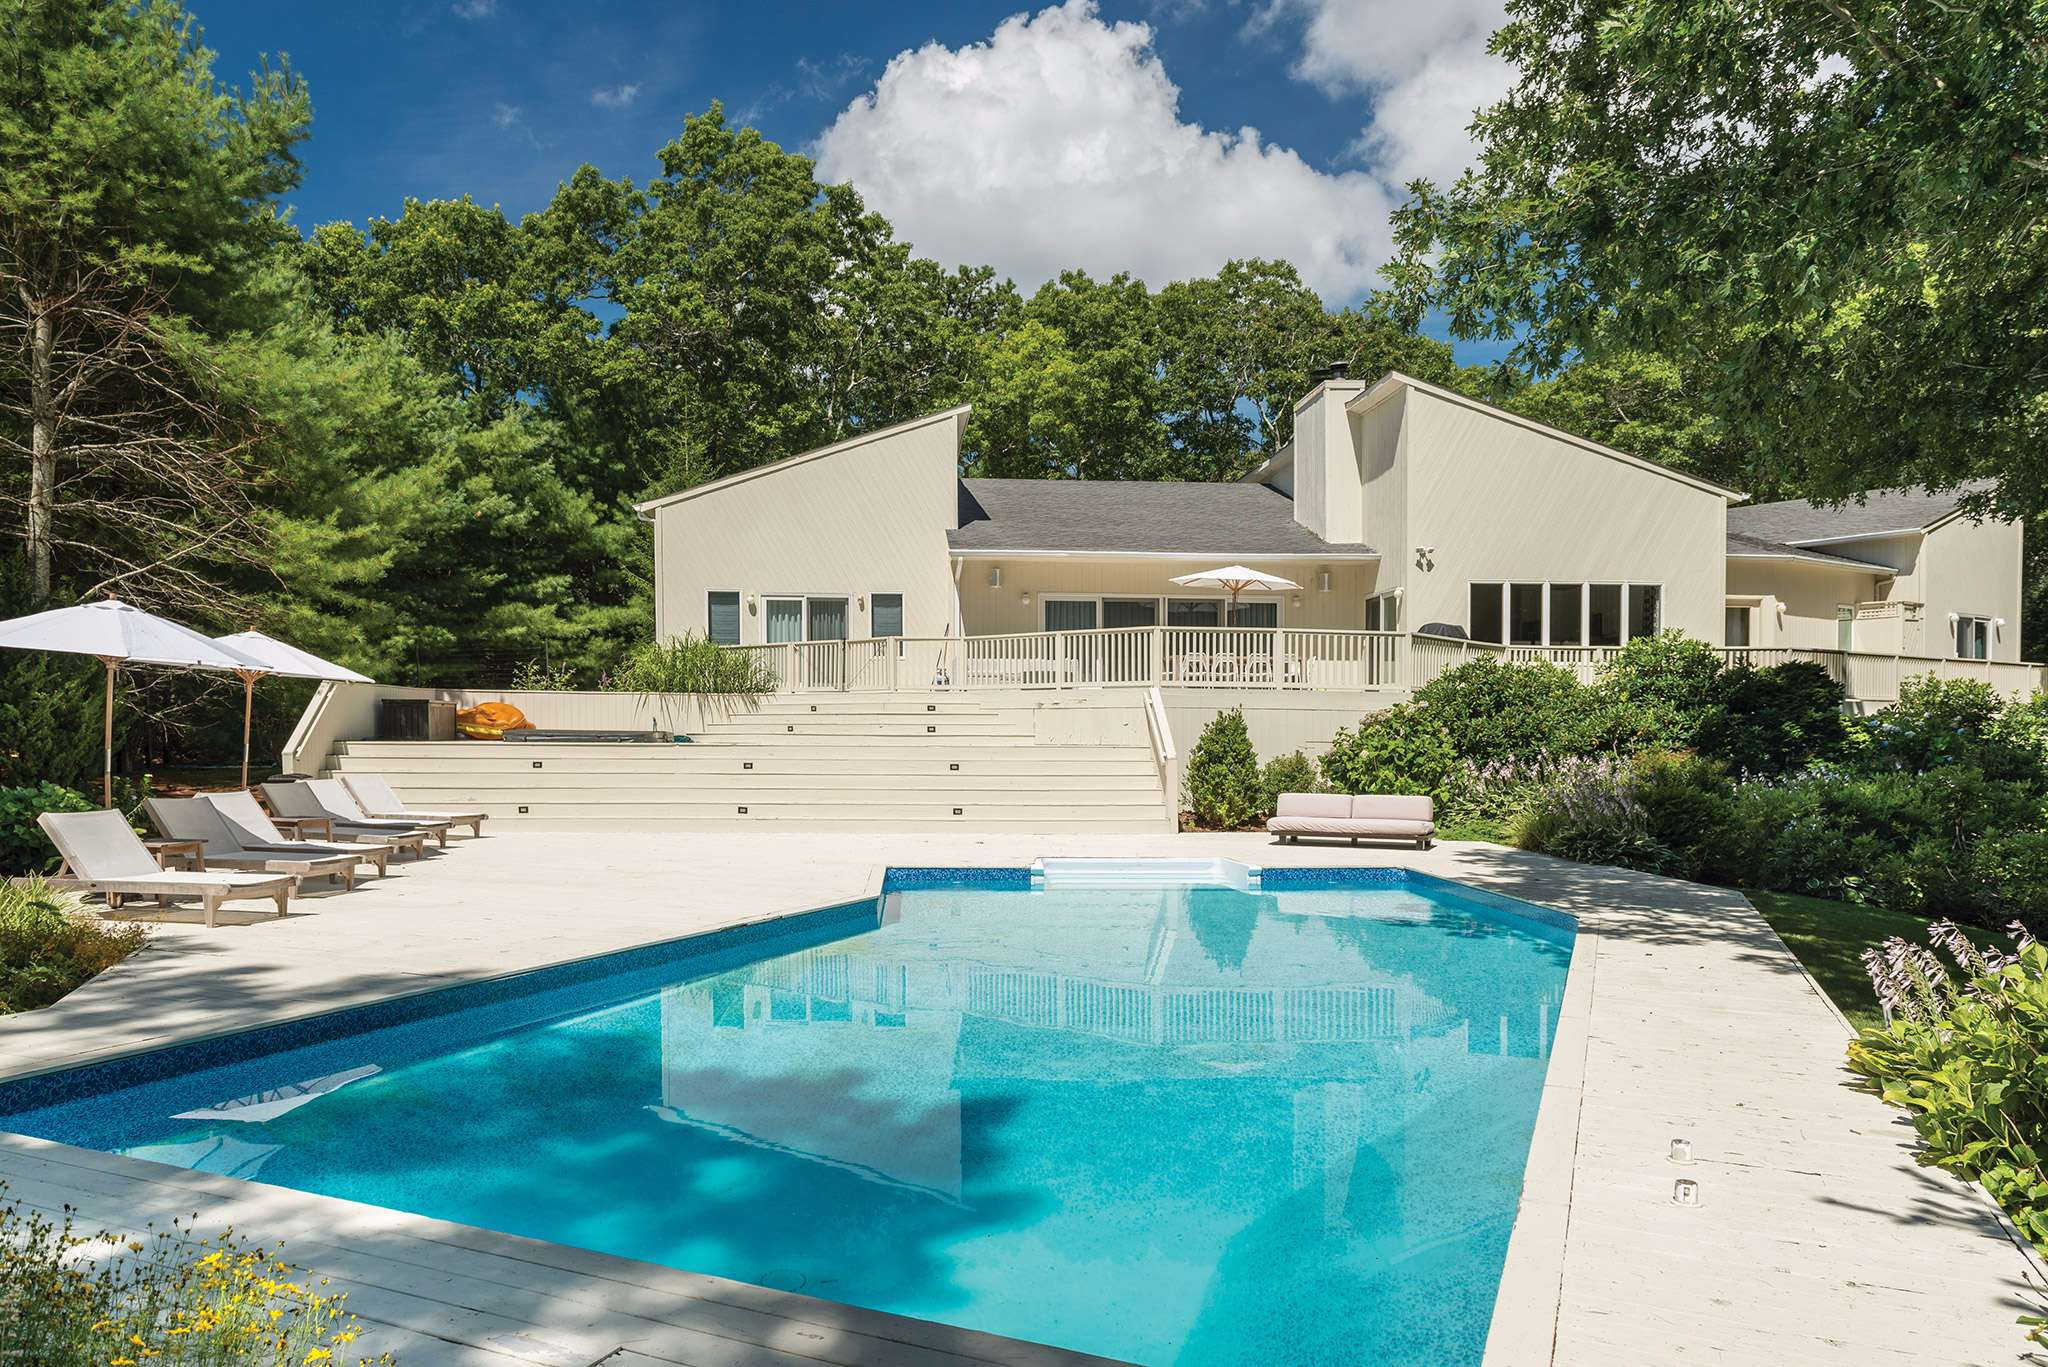 Single Family Home for Sale at Turnkey Sanctuary In Near Northwest 135 Bull Path, East Hampton, New York